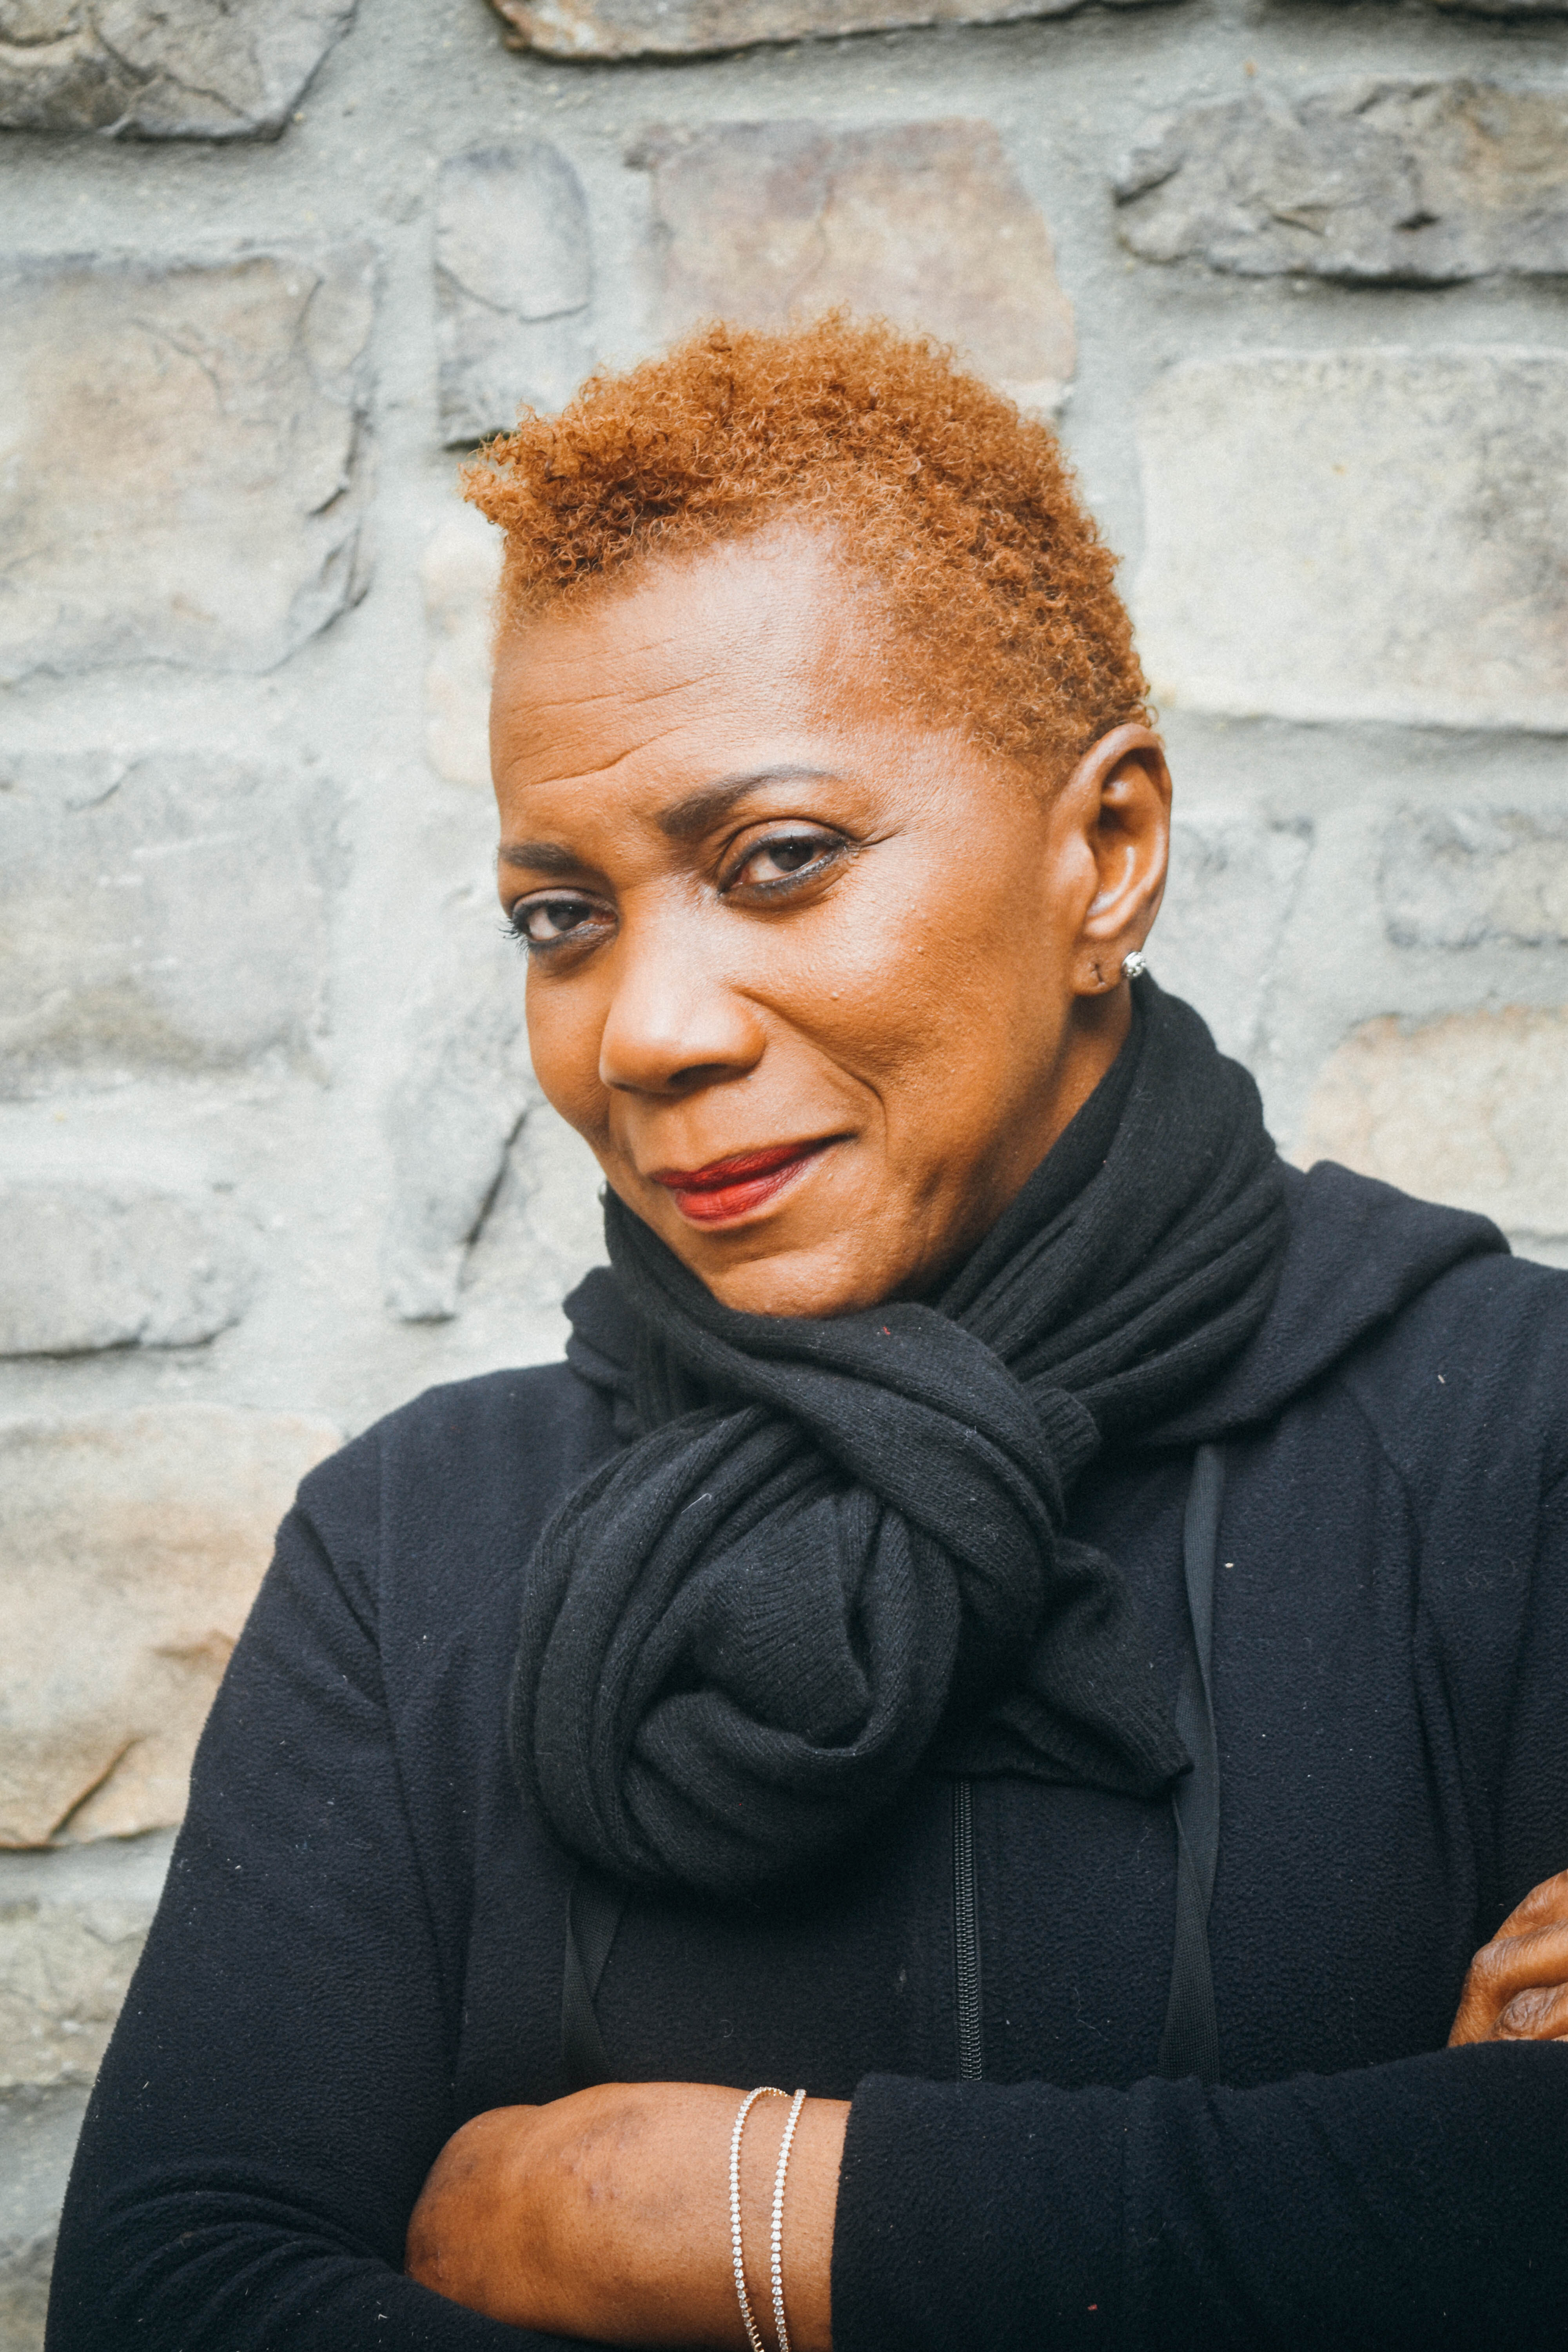 Five Lessons from Composer, arranger and visual artist Carmen Lundy